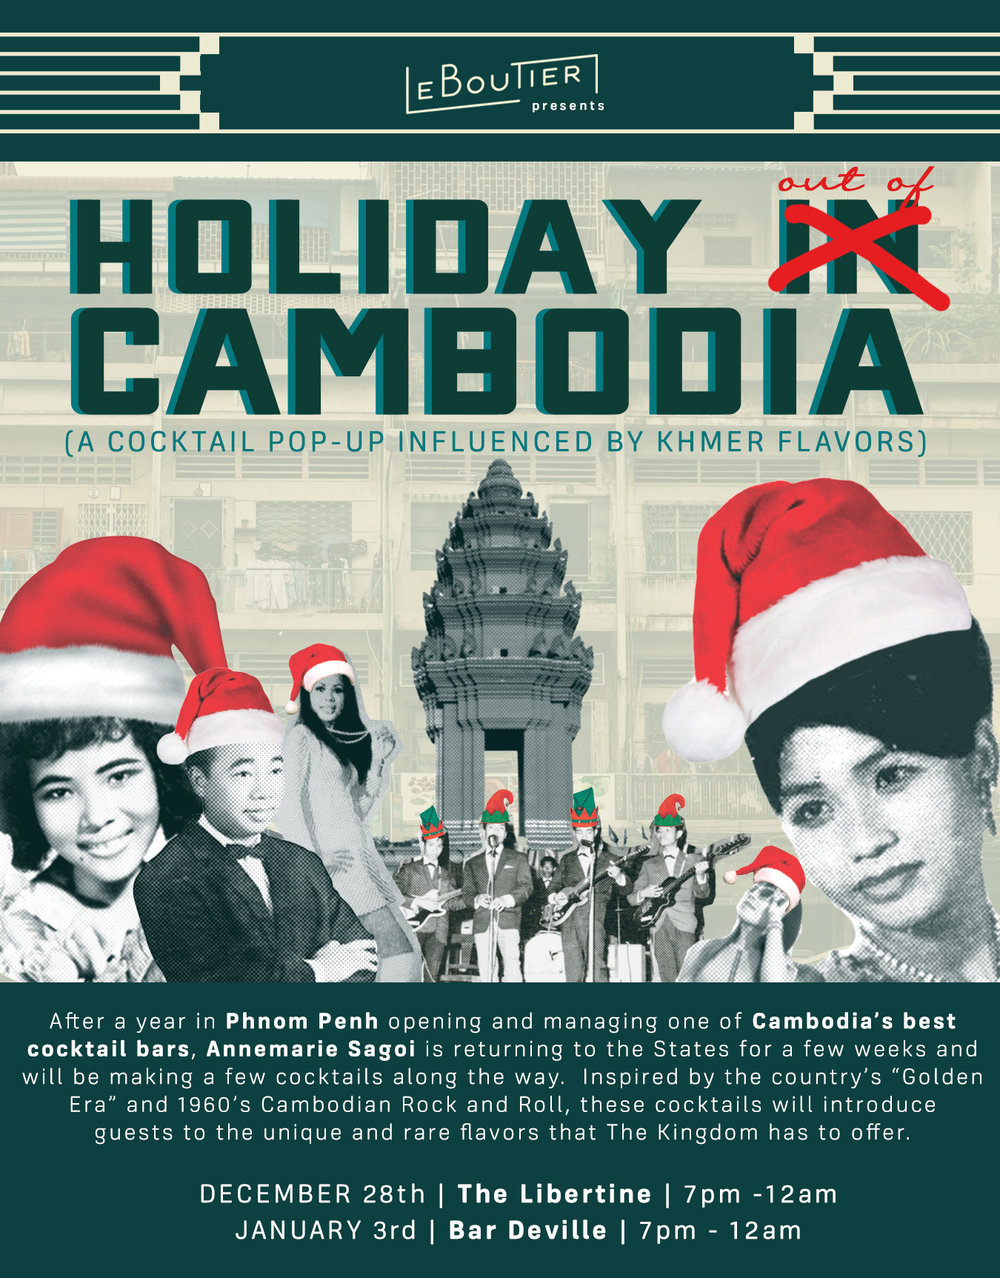 holiday outside cambodia.jpg